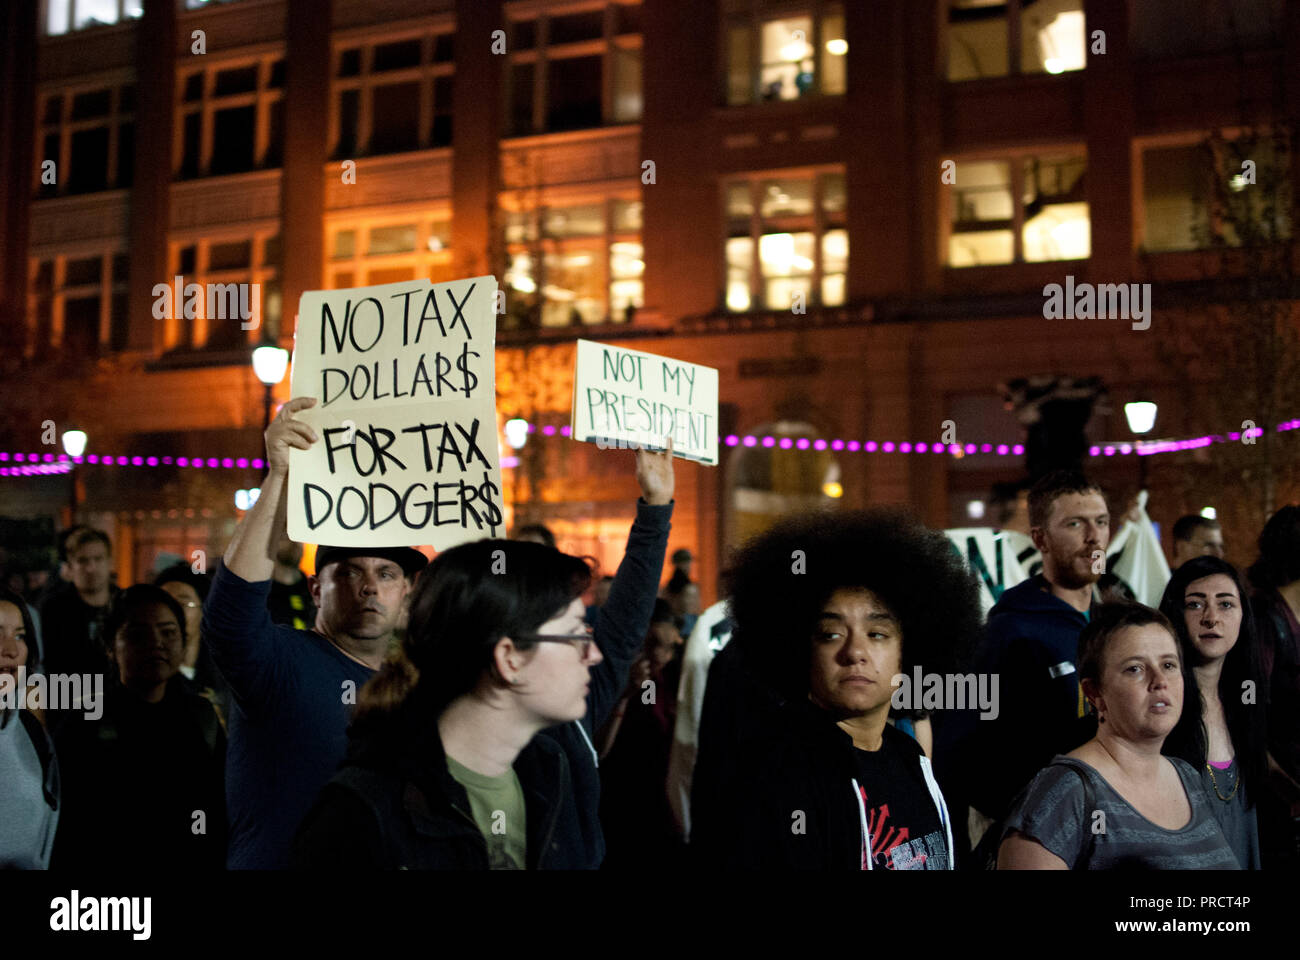 Protesters in Oakland carry signs reading 'no tax dollars for tax dodgers' and 'not my president' against the election of Donald Trump on Nov. 9, 2016 - Stock Image